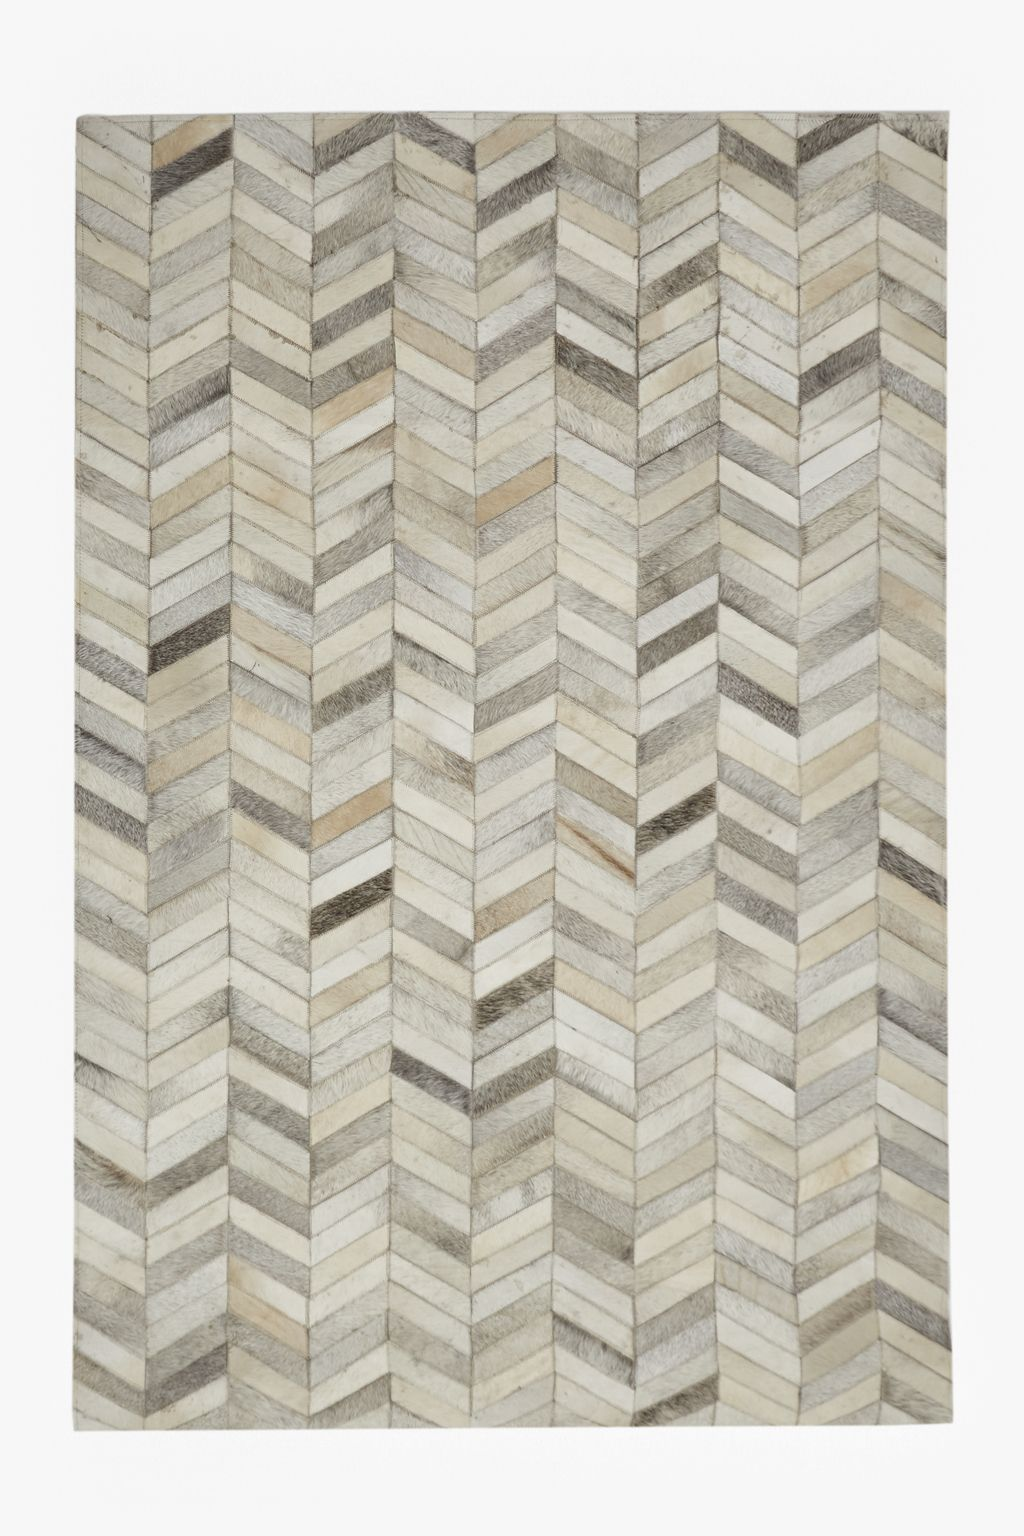 Ul Li Tonal Chevron Patterned Cowhide Leather Rug